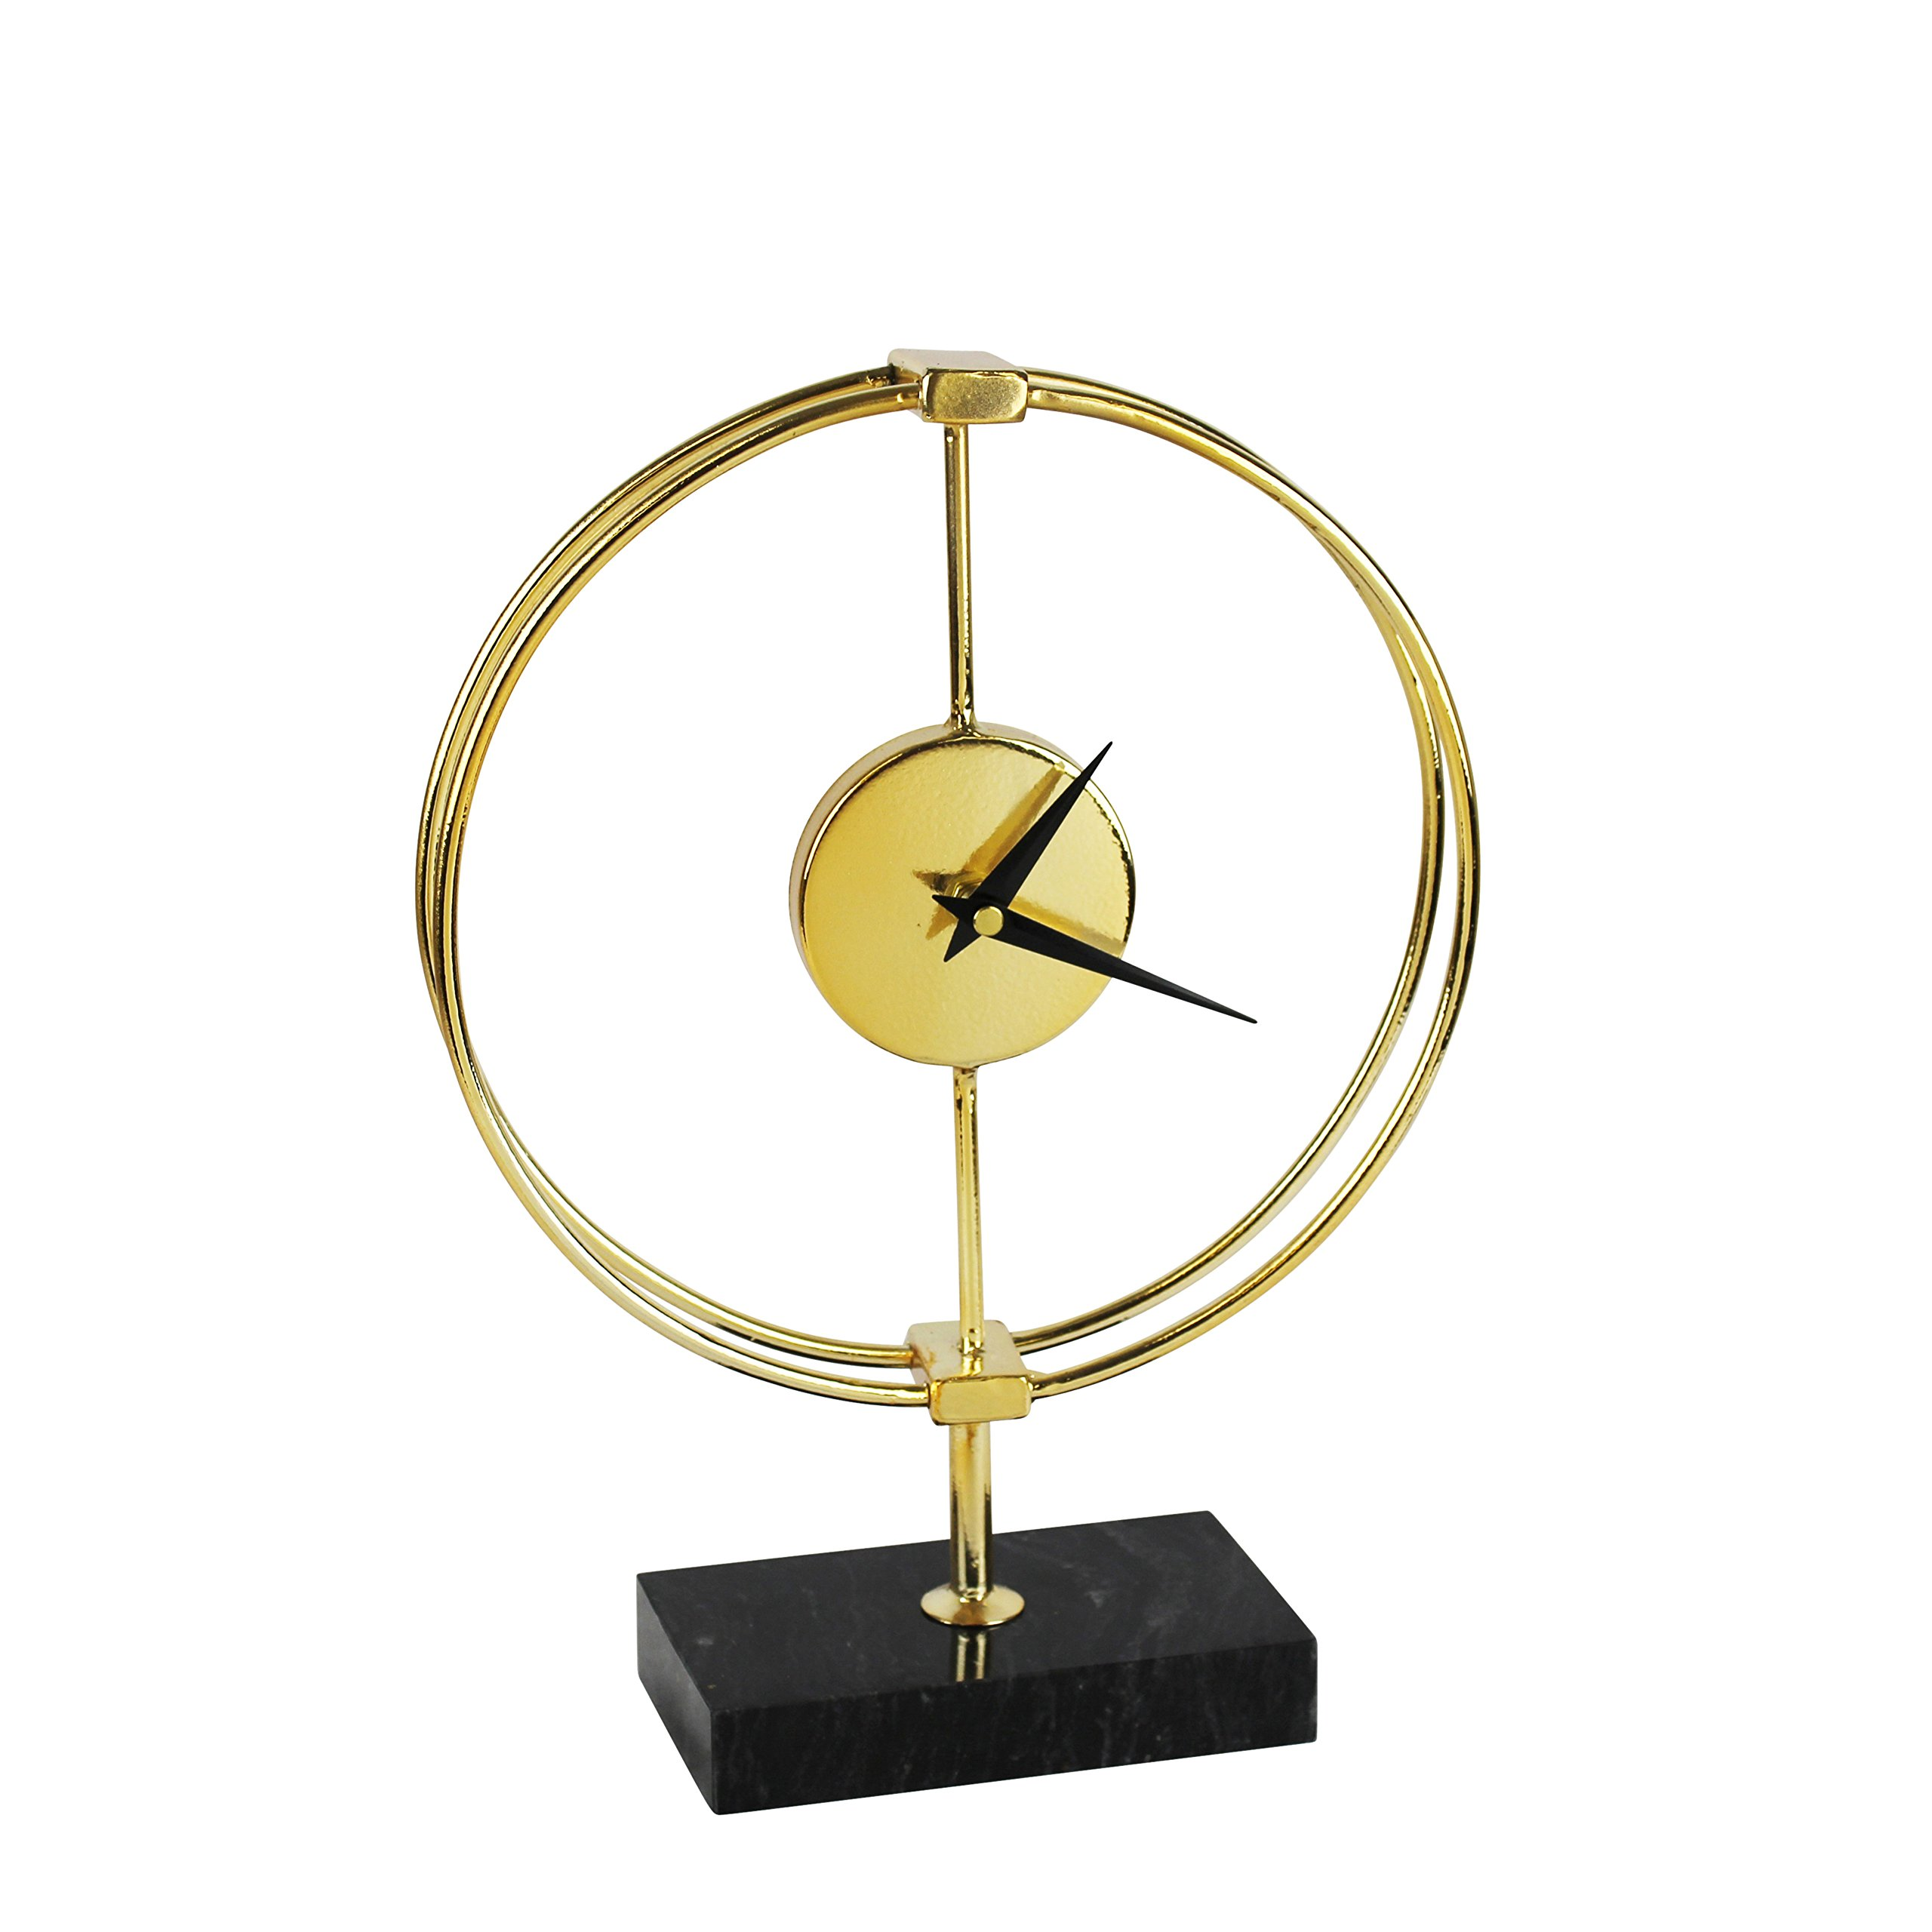 Sagebrook Home 12787 Metal Table Clock on Stand Window Box Acrylic, 9.25 x 3.25 x 13 Inches, Gold/Black